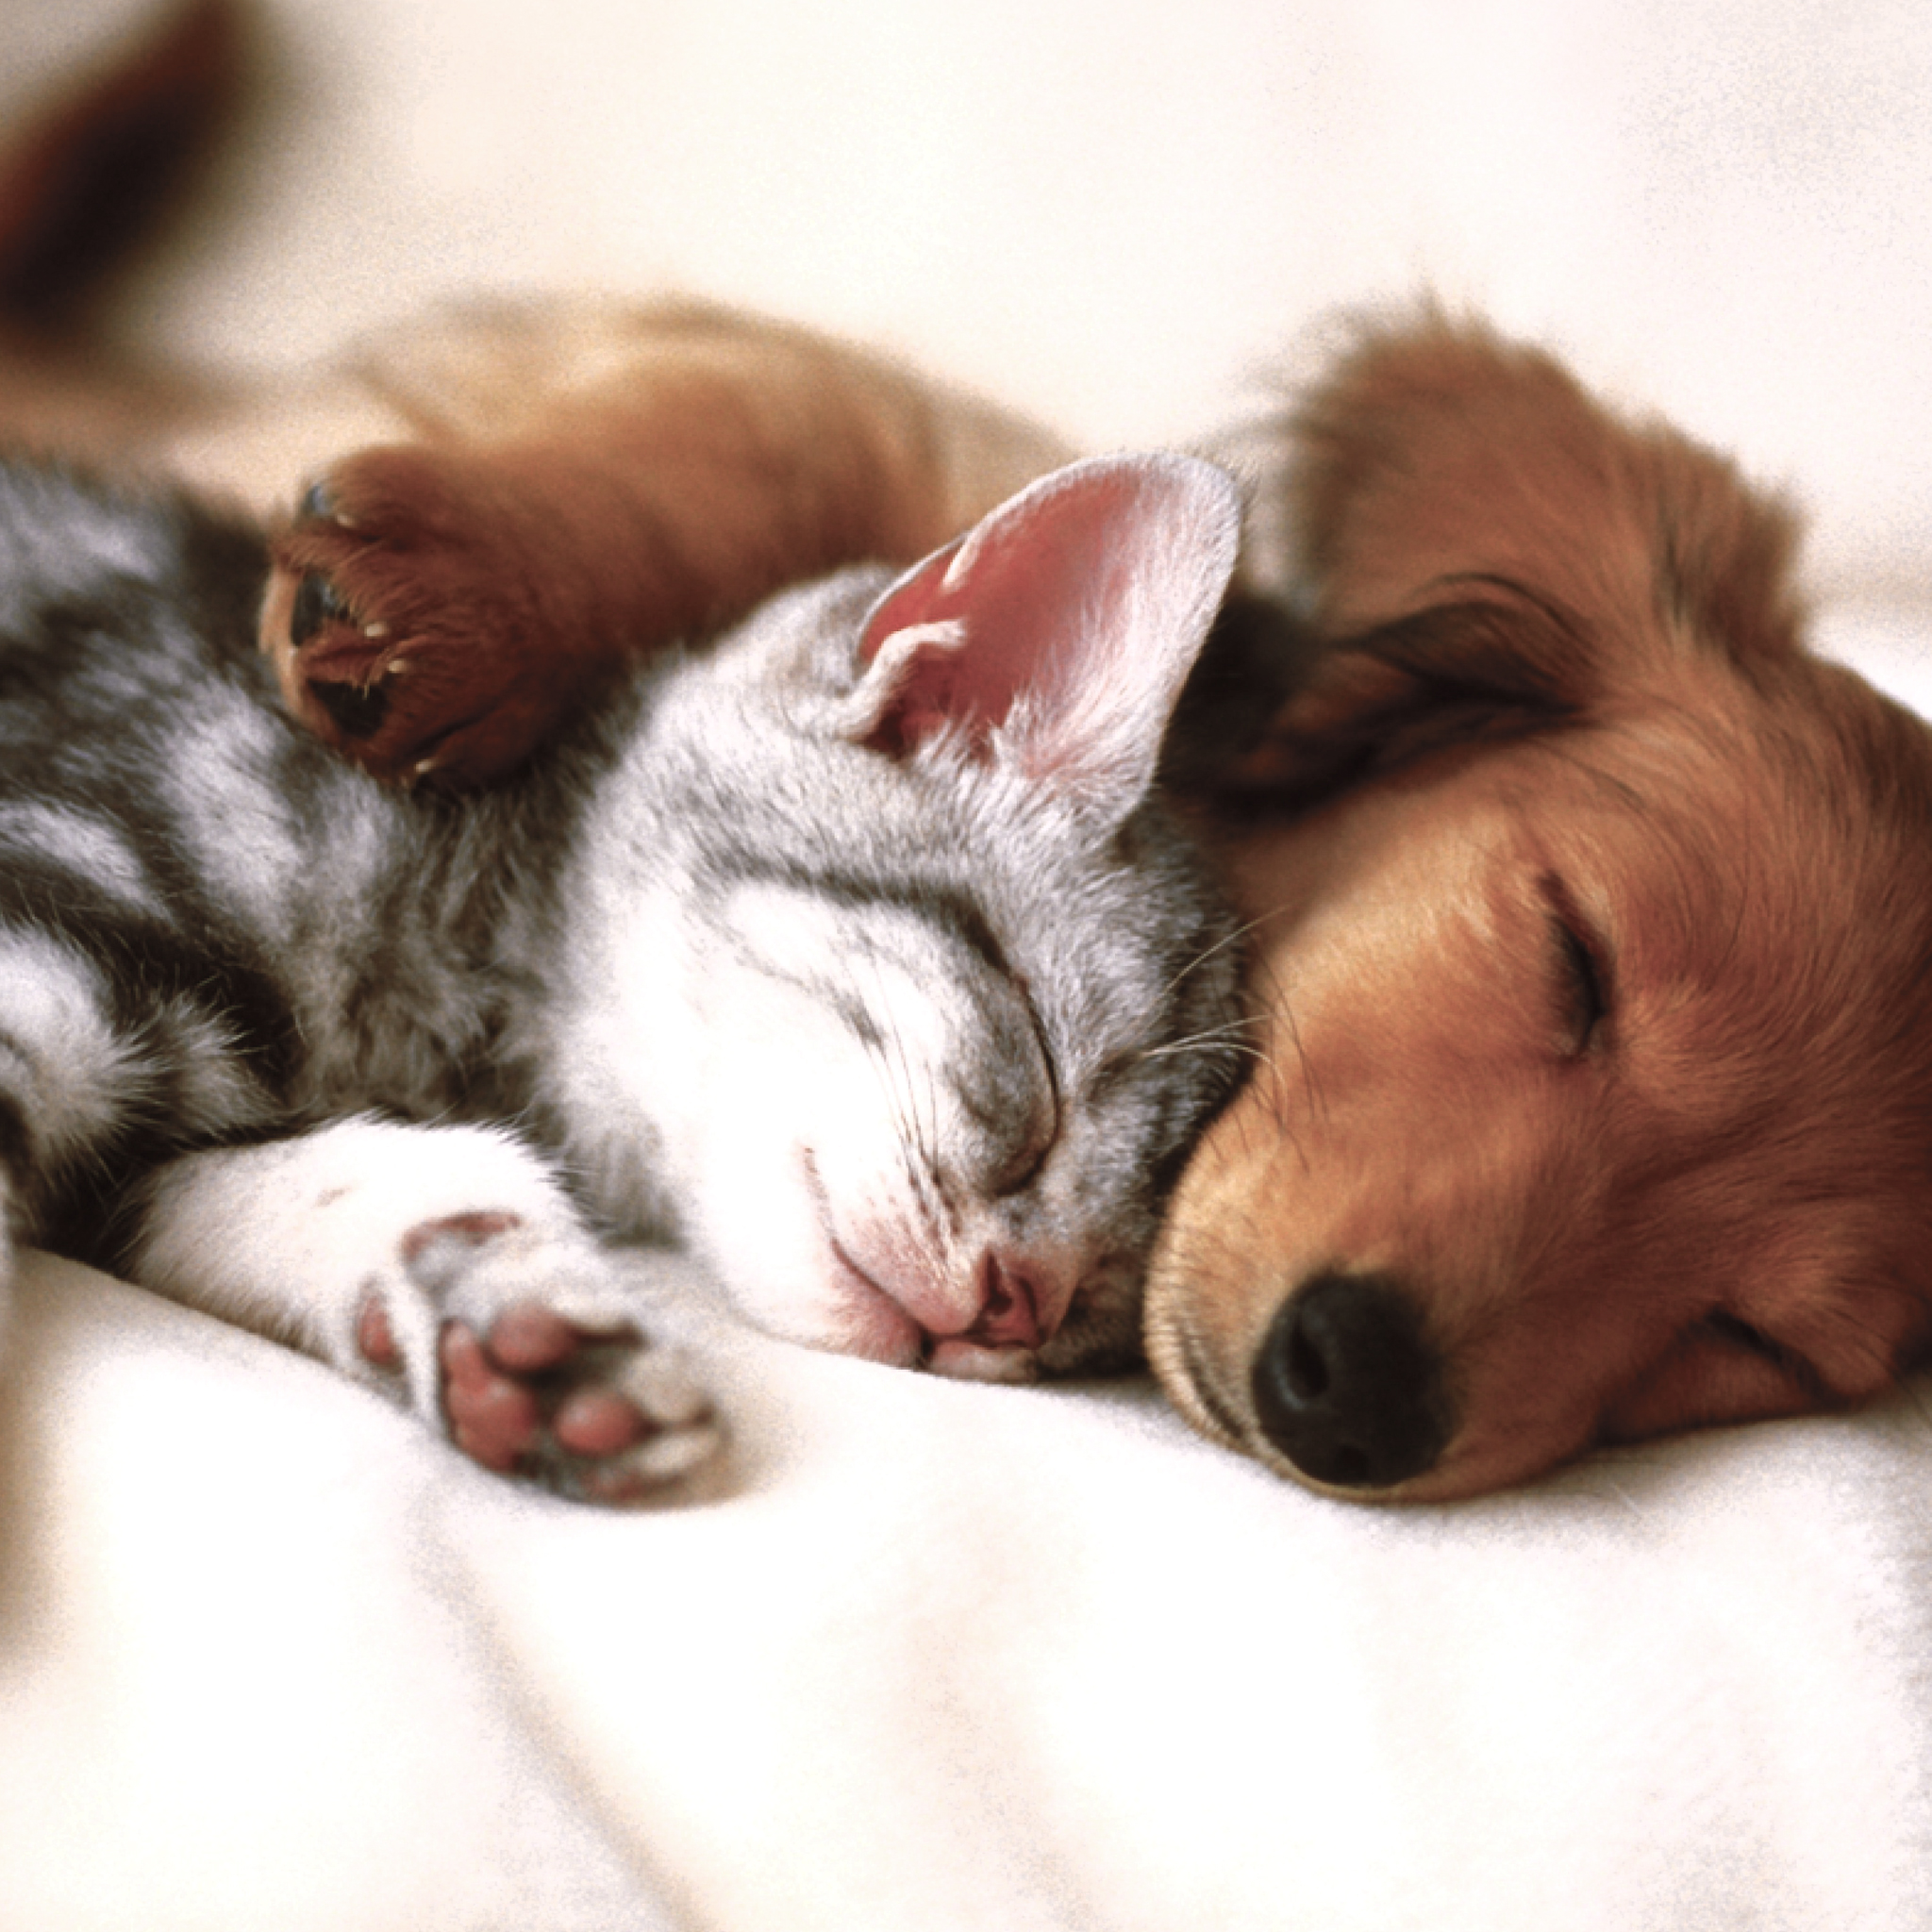 Cat and Dog 3Wallpapers ipad Retina Cat and Dog   iPad Retina